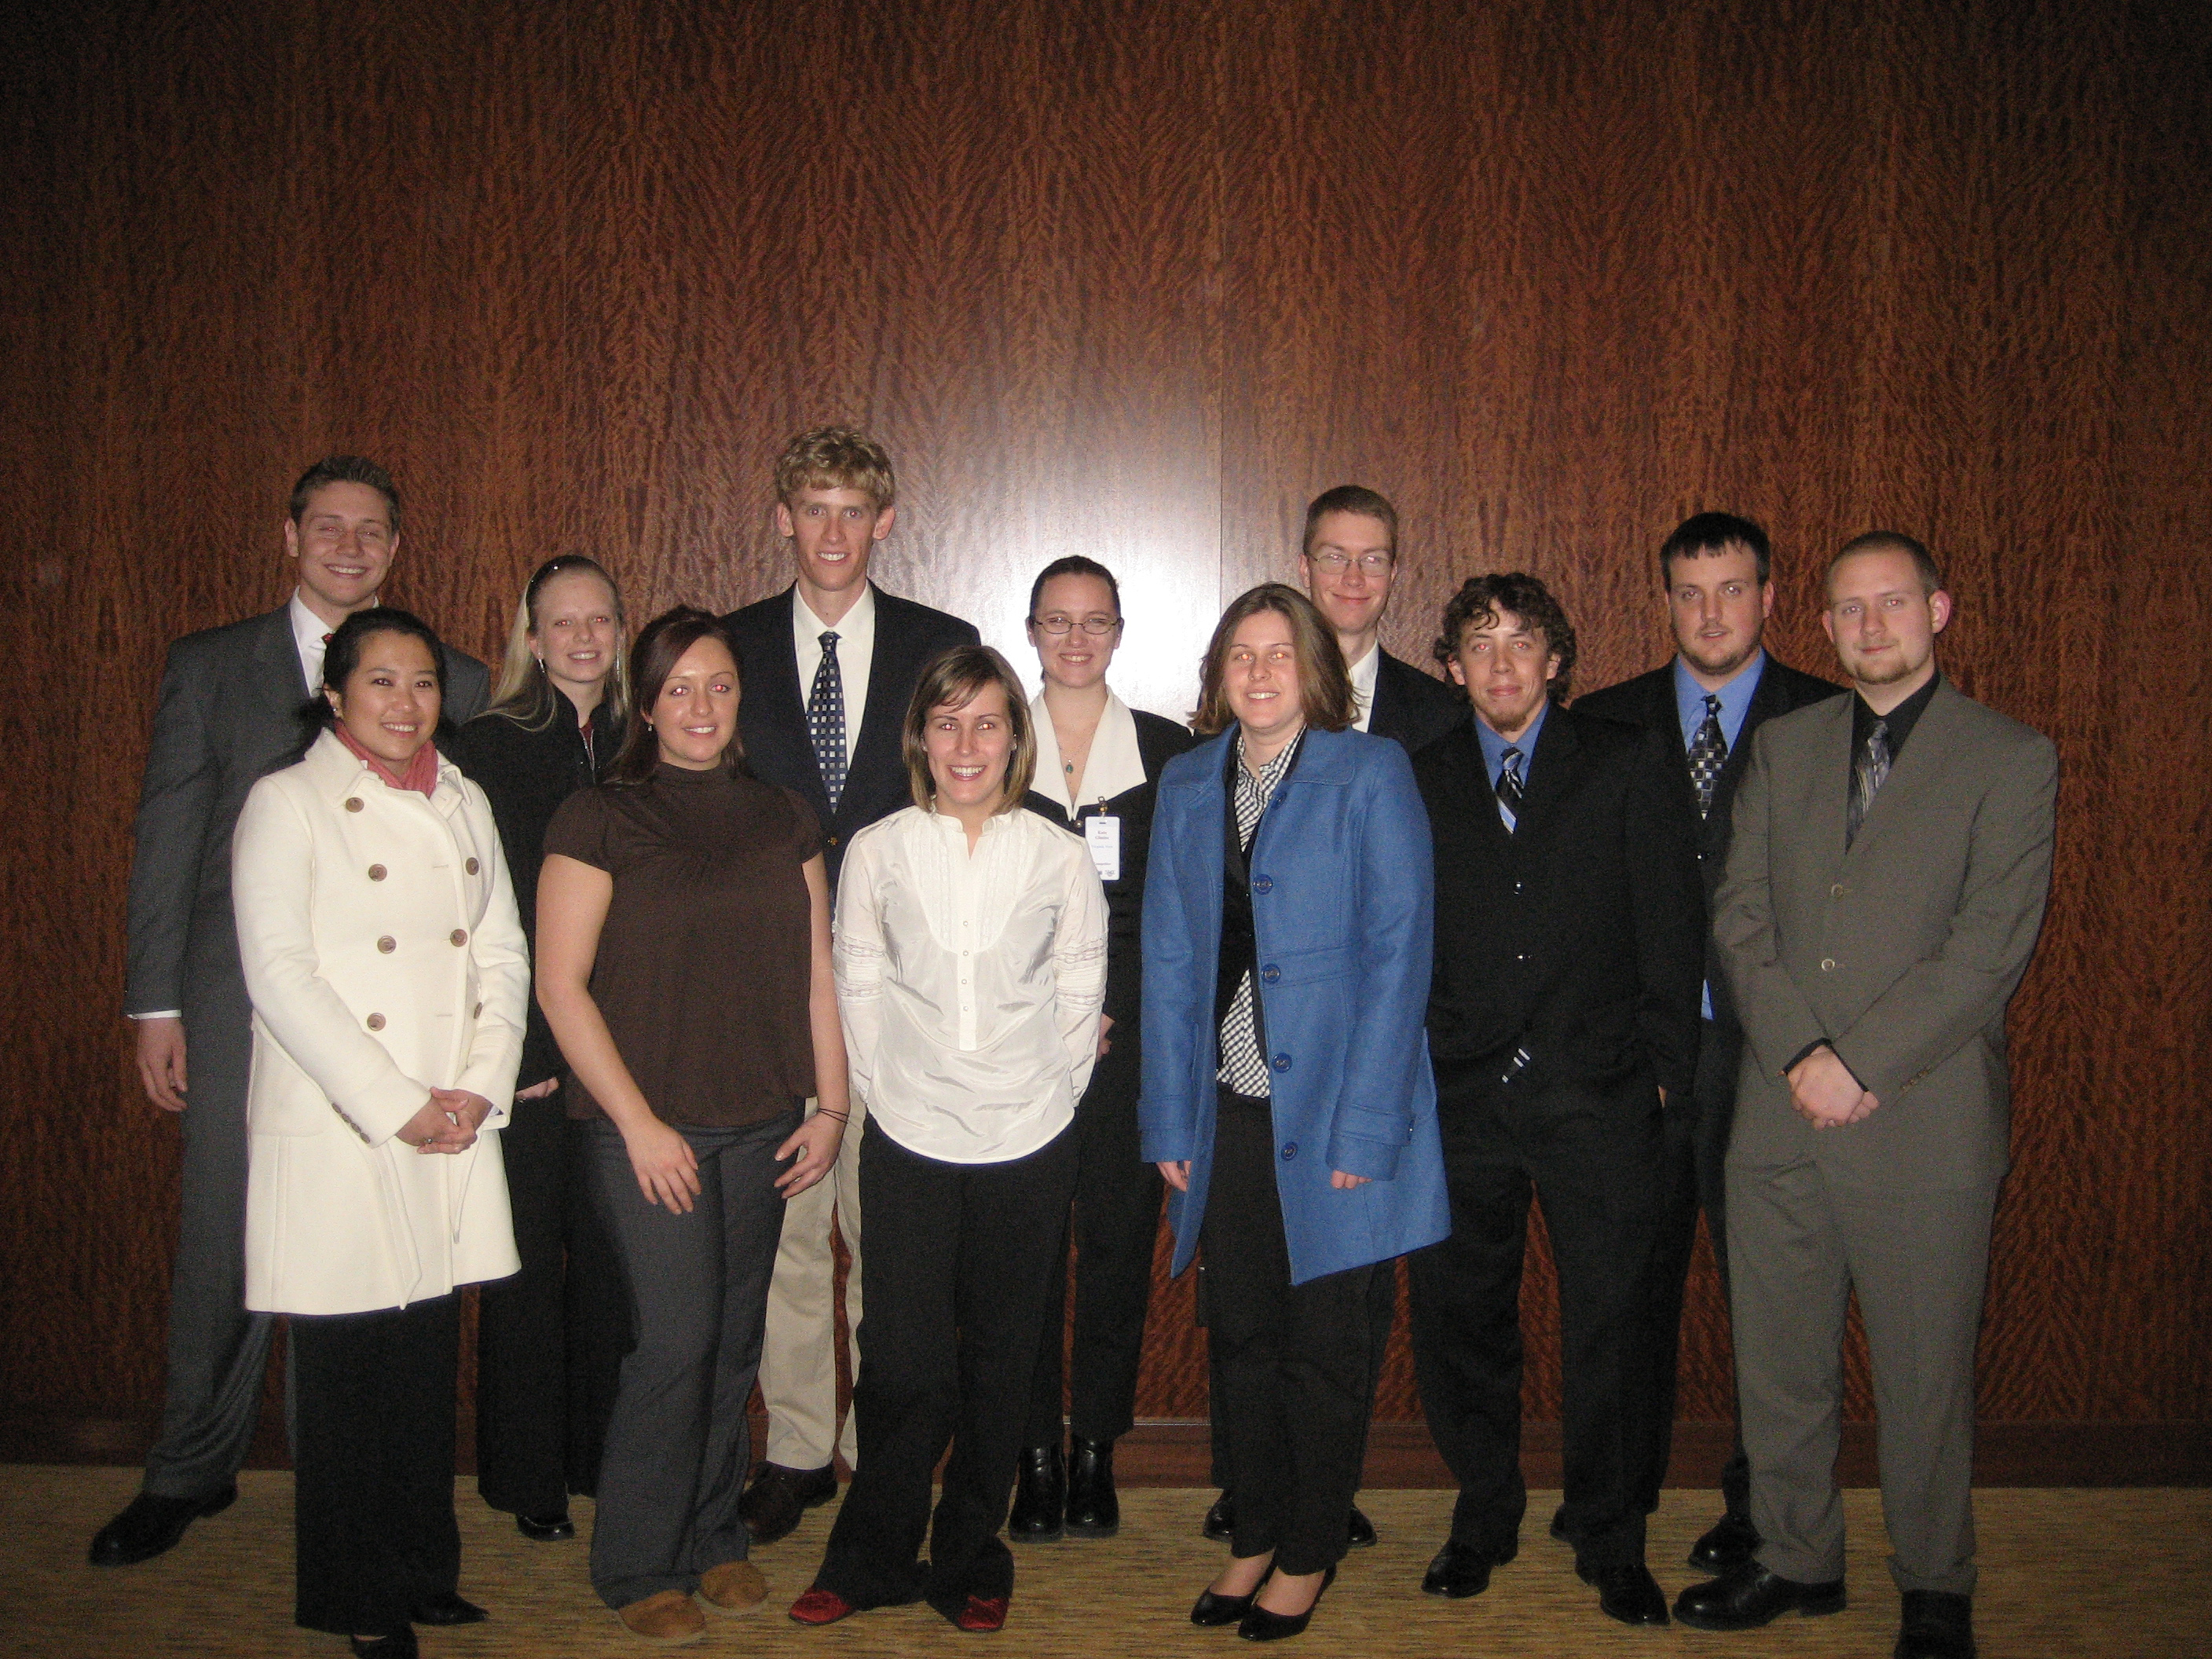 Pictured are the mining engineering students of the 2008 Virginia Tech Student Design Competition teams. Back row, left to right, are: Alek Duerksen, Holly Fitz, Andrew Storey, Kate Glusiec, David McConnell, and James Winfield. Front row, left to right, are: Rosalyn de la Pena, Carolyn Relyea, Erica Doolittle, Bridget Mead, Travis Tyndall, and John Bowling.